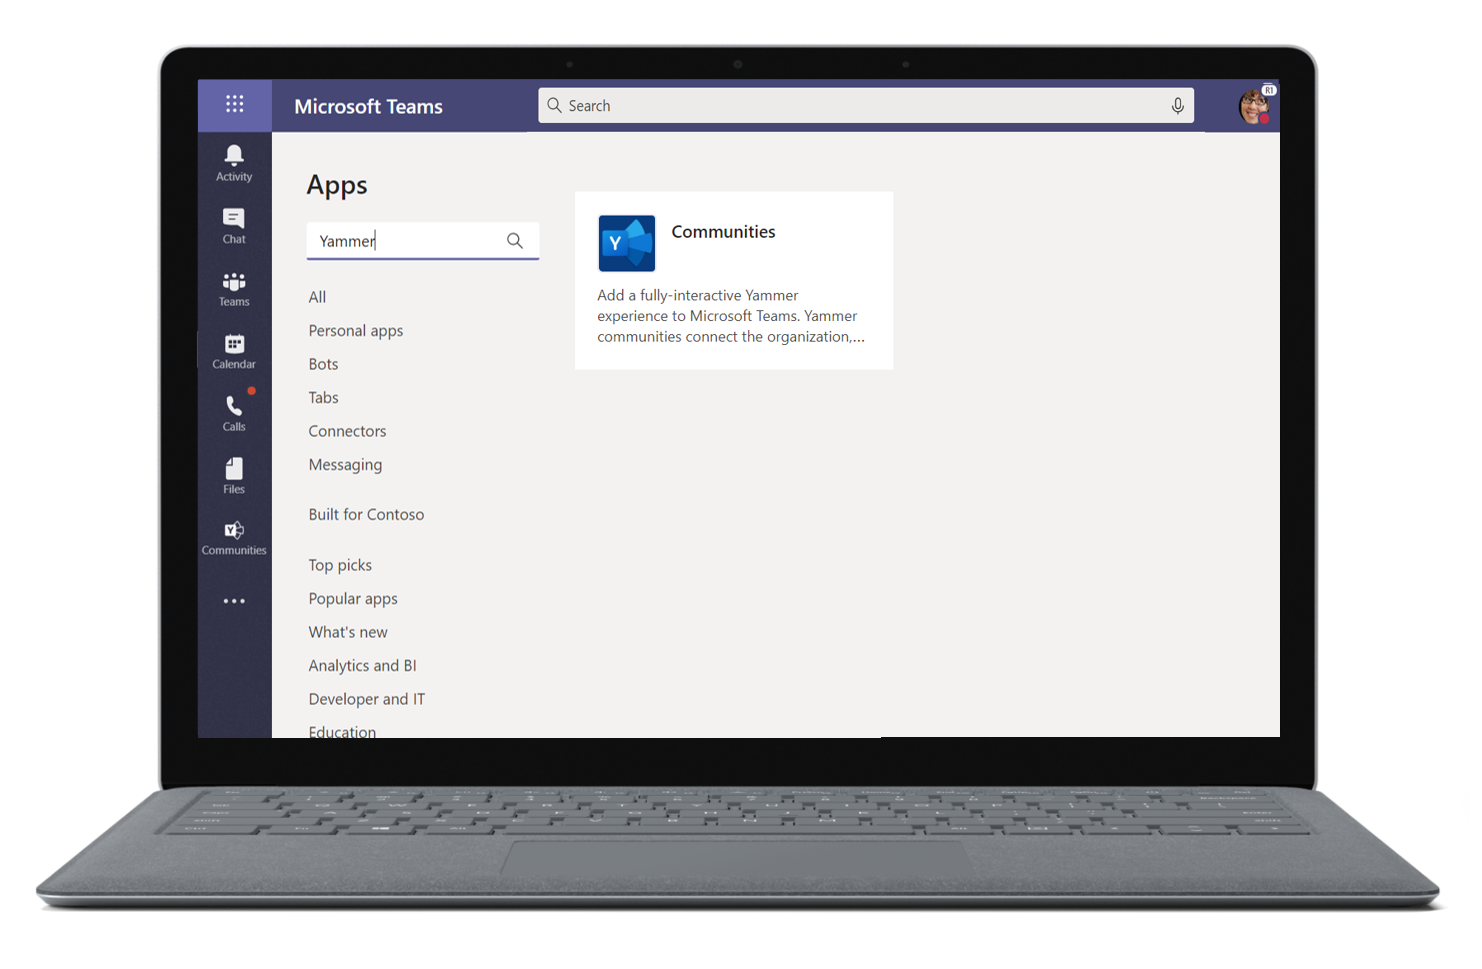 Image of the Yammer app being searched for in Microsoft Teams.